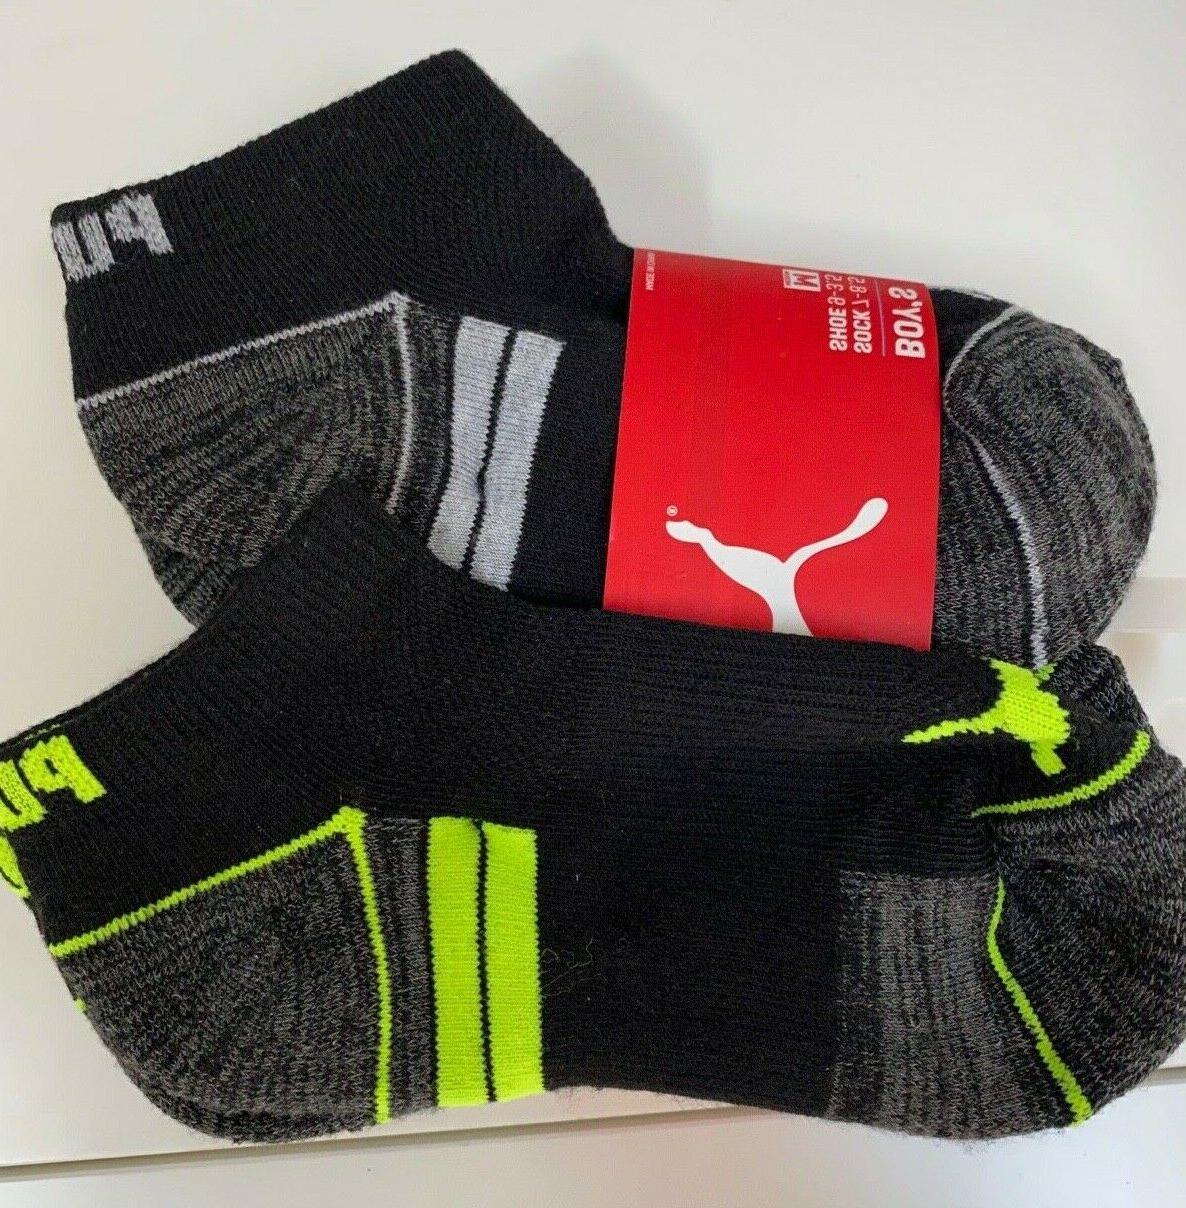 Puma Coolcell Low Cut Ankle Socks M 7-8.5 Boys Shoes 9-3.5